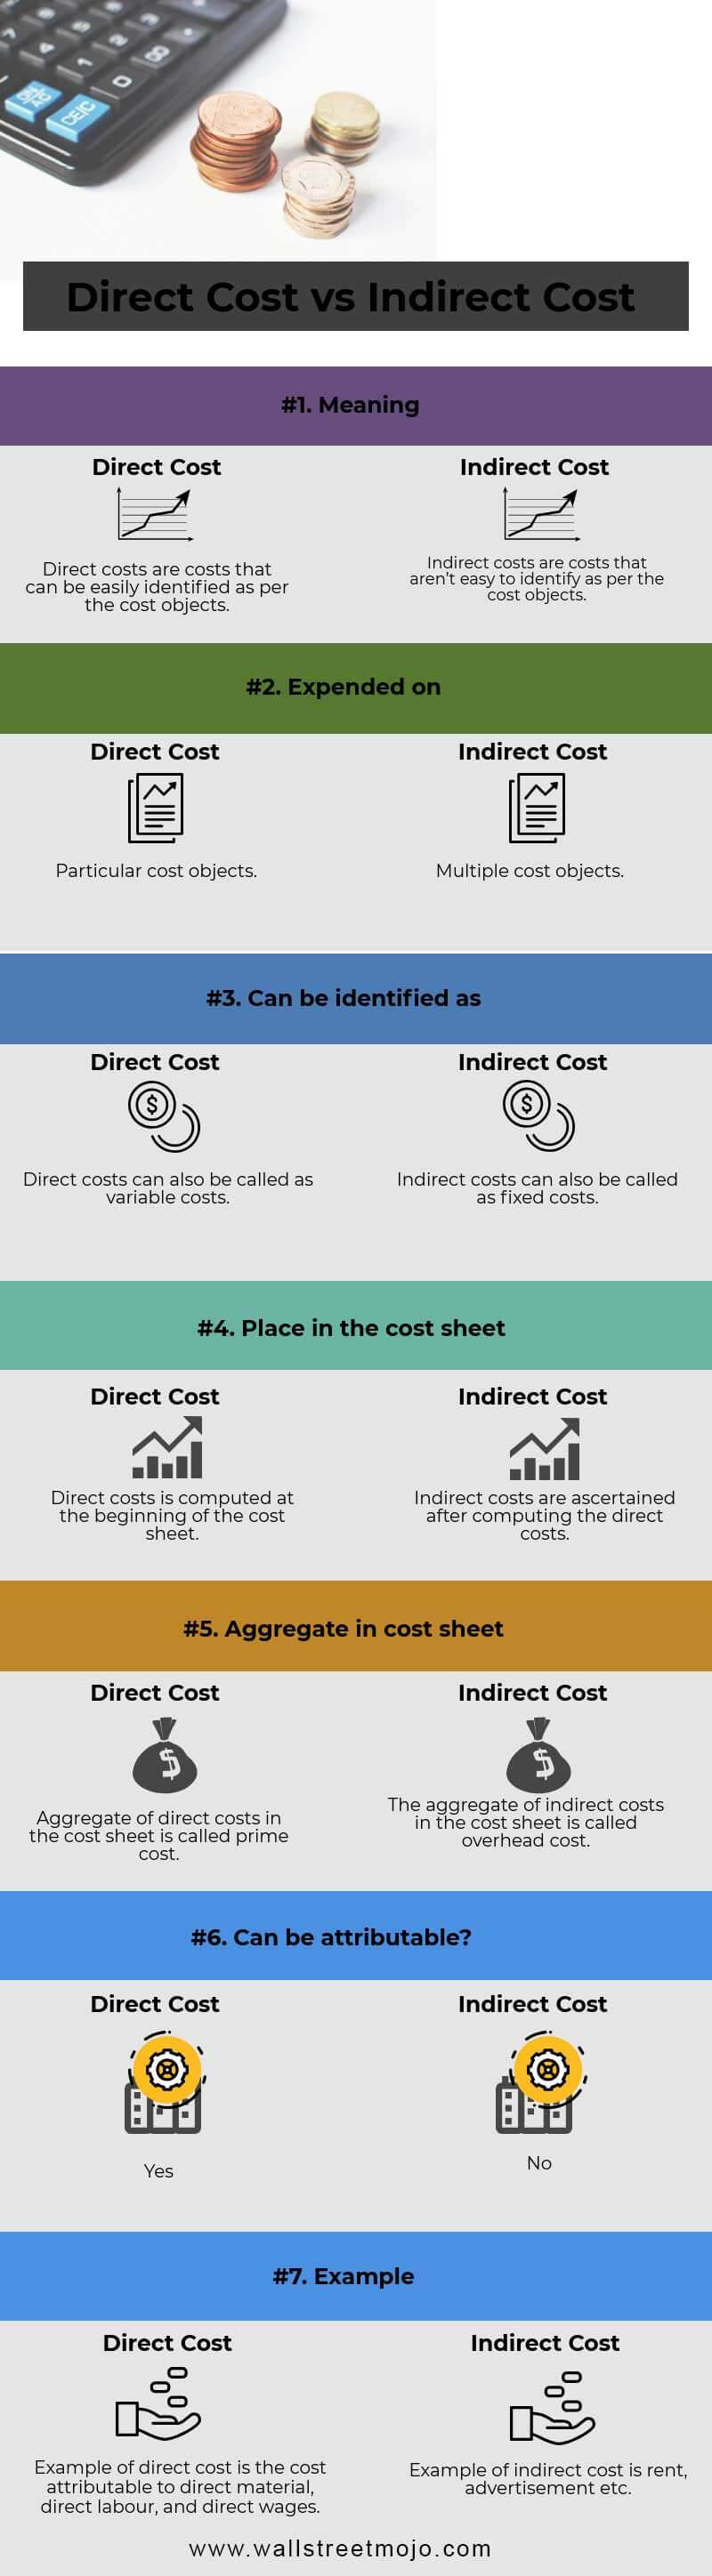 Direct-Cost-vs-Indirect-Cost-info